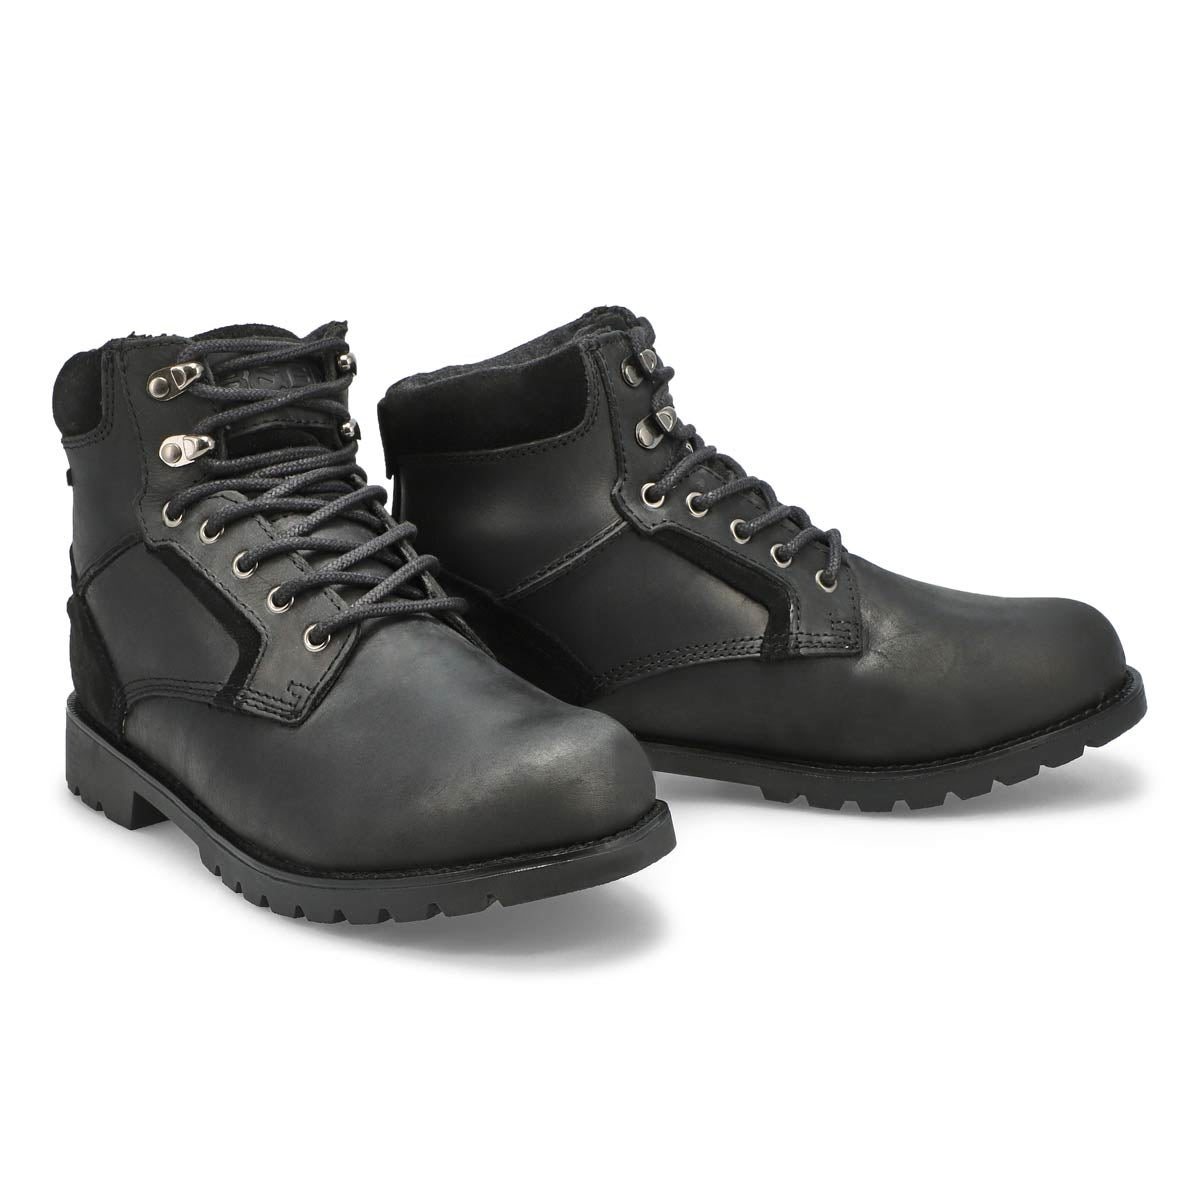 Mns Martin blk wtpf lace-up winter boot